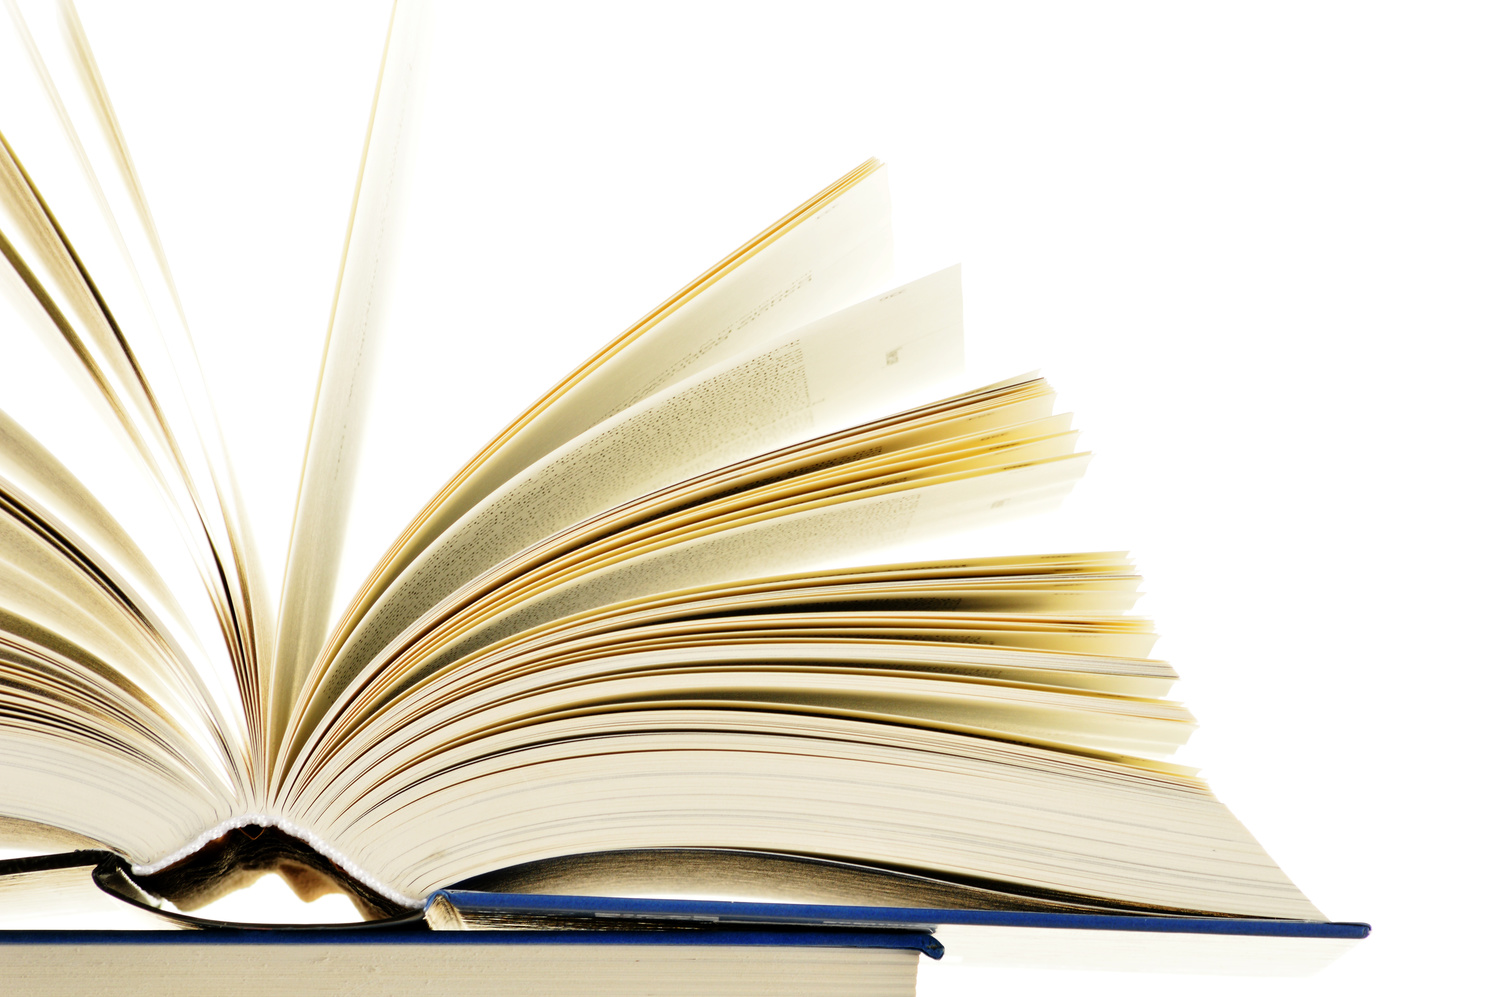 Power up your business book reading — Your Entrepreneurial Spirit